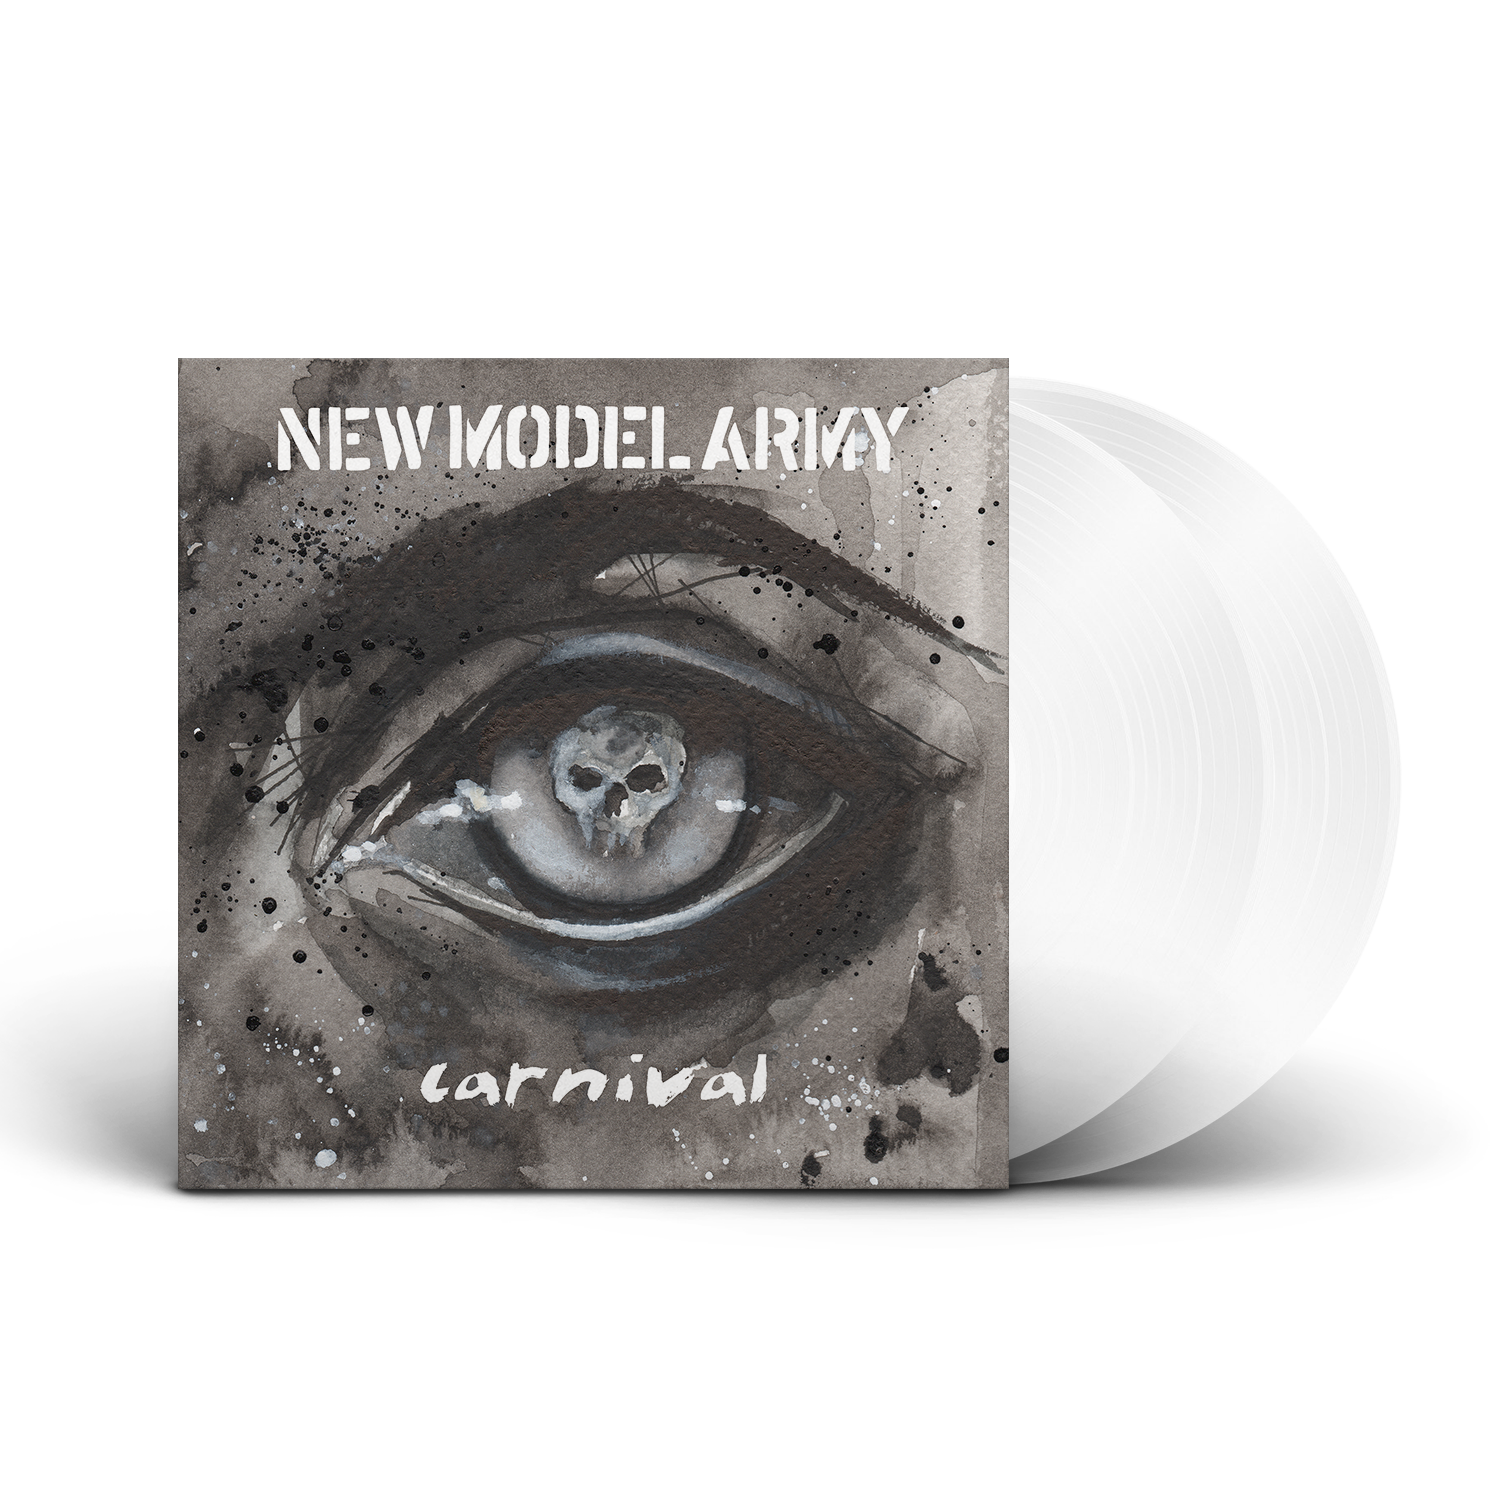 New Model Army - Carnival (2LP Gatefold Sleeve White Vinyl)